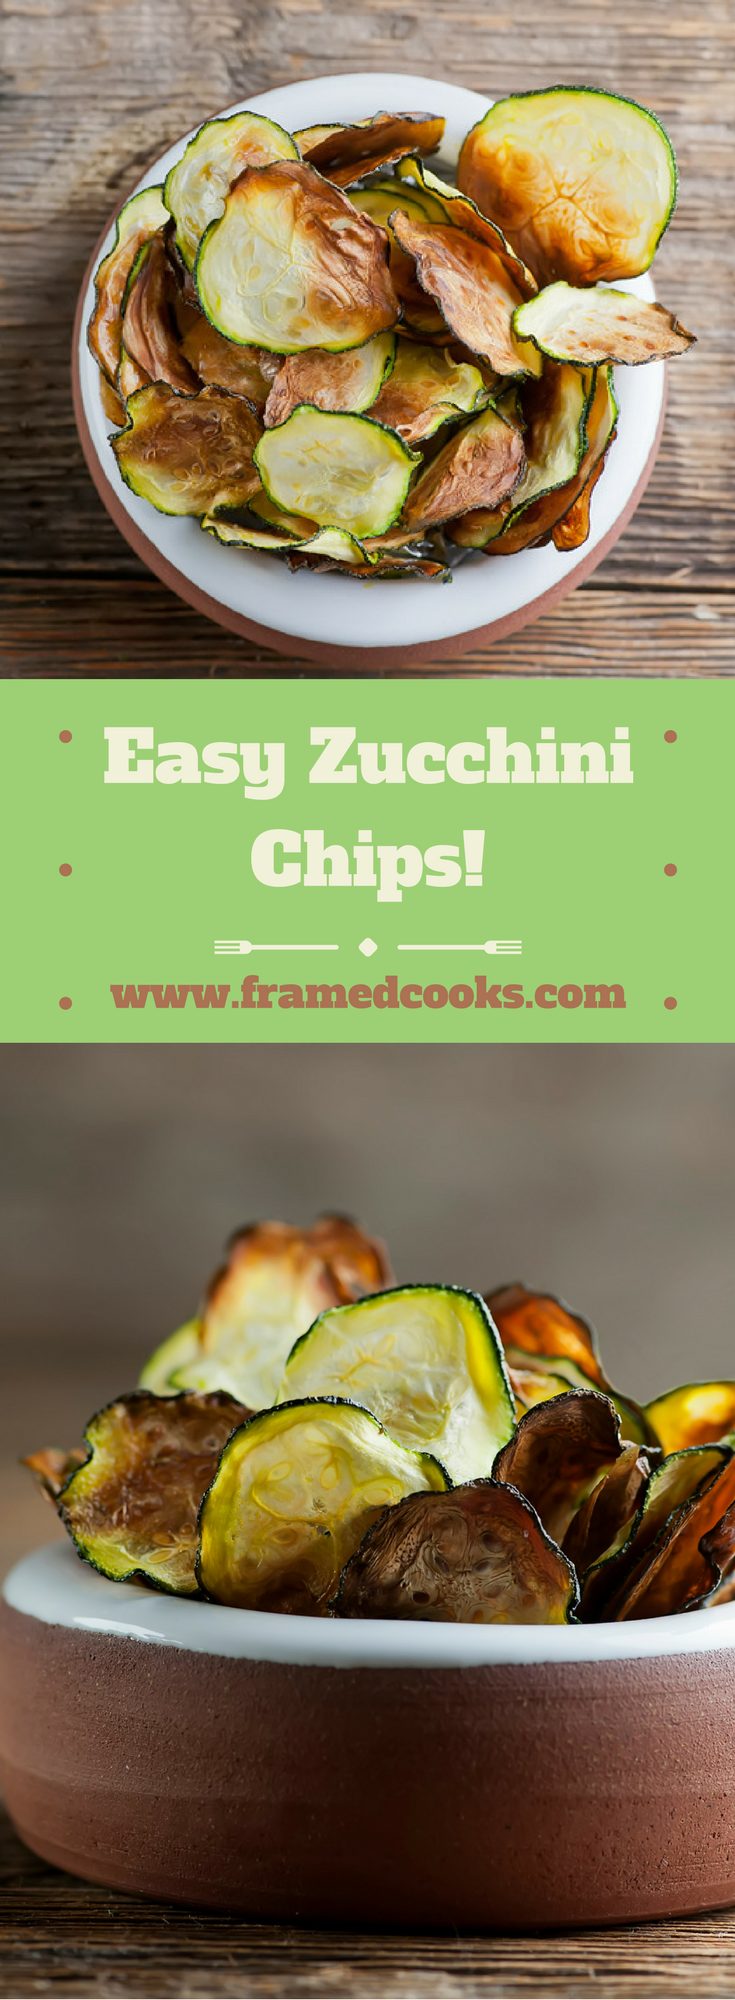 This recipe for easy zucchini chips makes a great snack or appetizer while at the same time helping use up that bumper crop of zucchini in your garden!